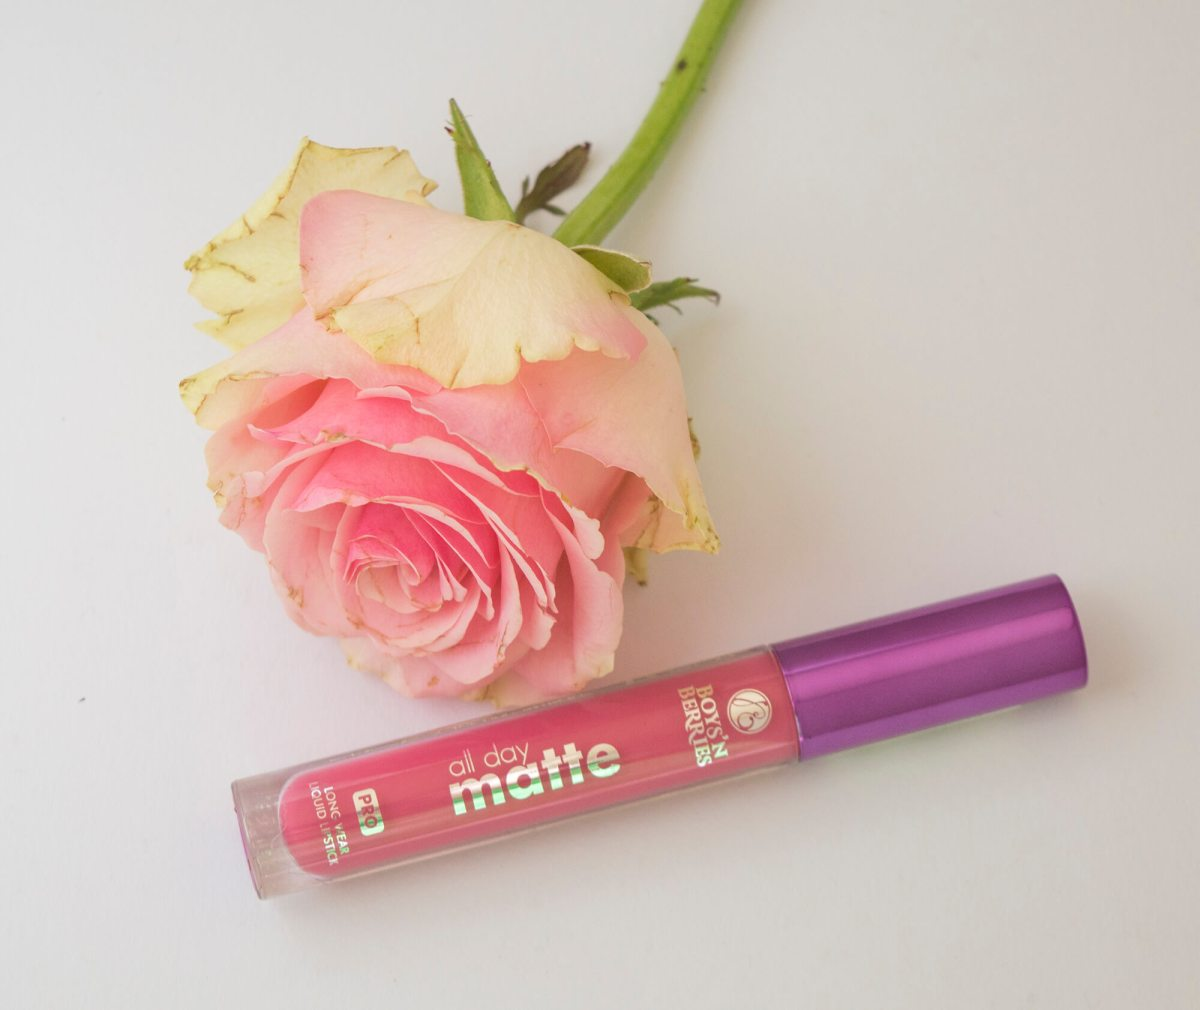 The most resistant liquid lipstick I ever tried: Boys'n'Berries All Day Matte